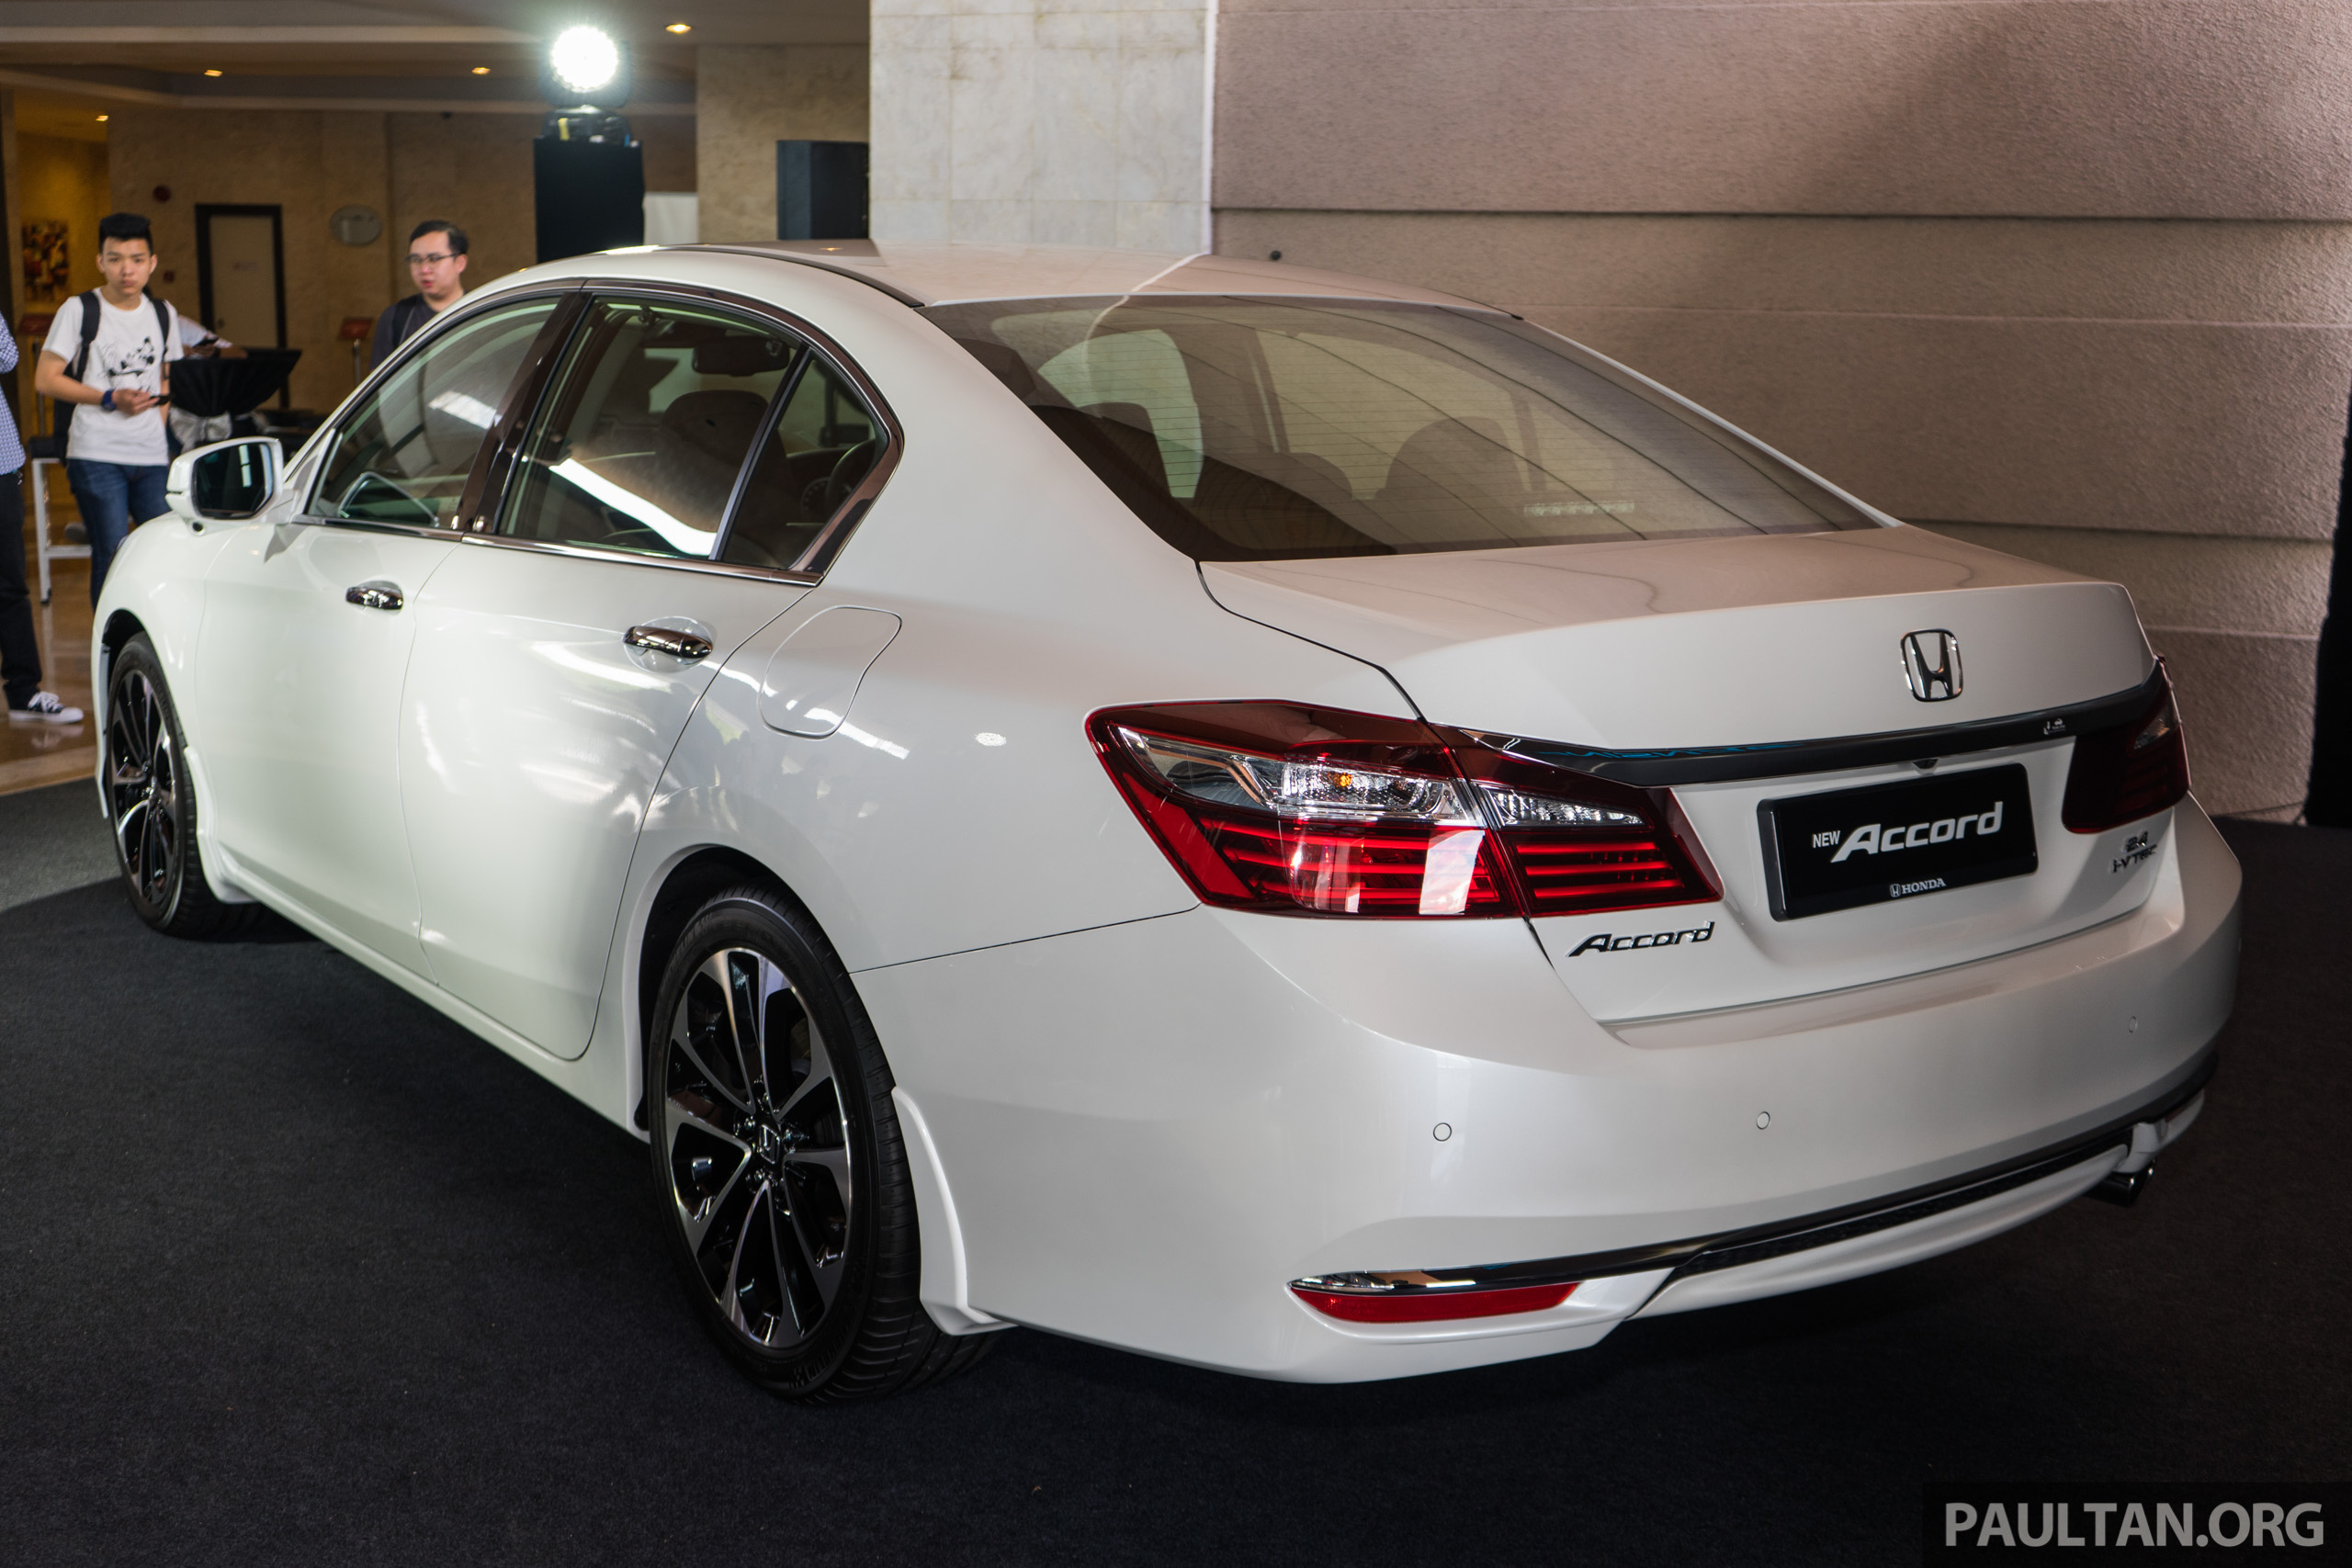 Honda Accord 24 VTi L Advance Now With Sensing Safety Package RM170k Base